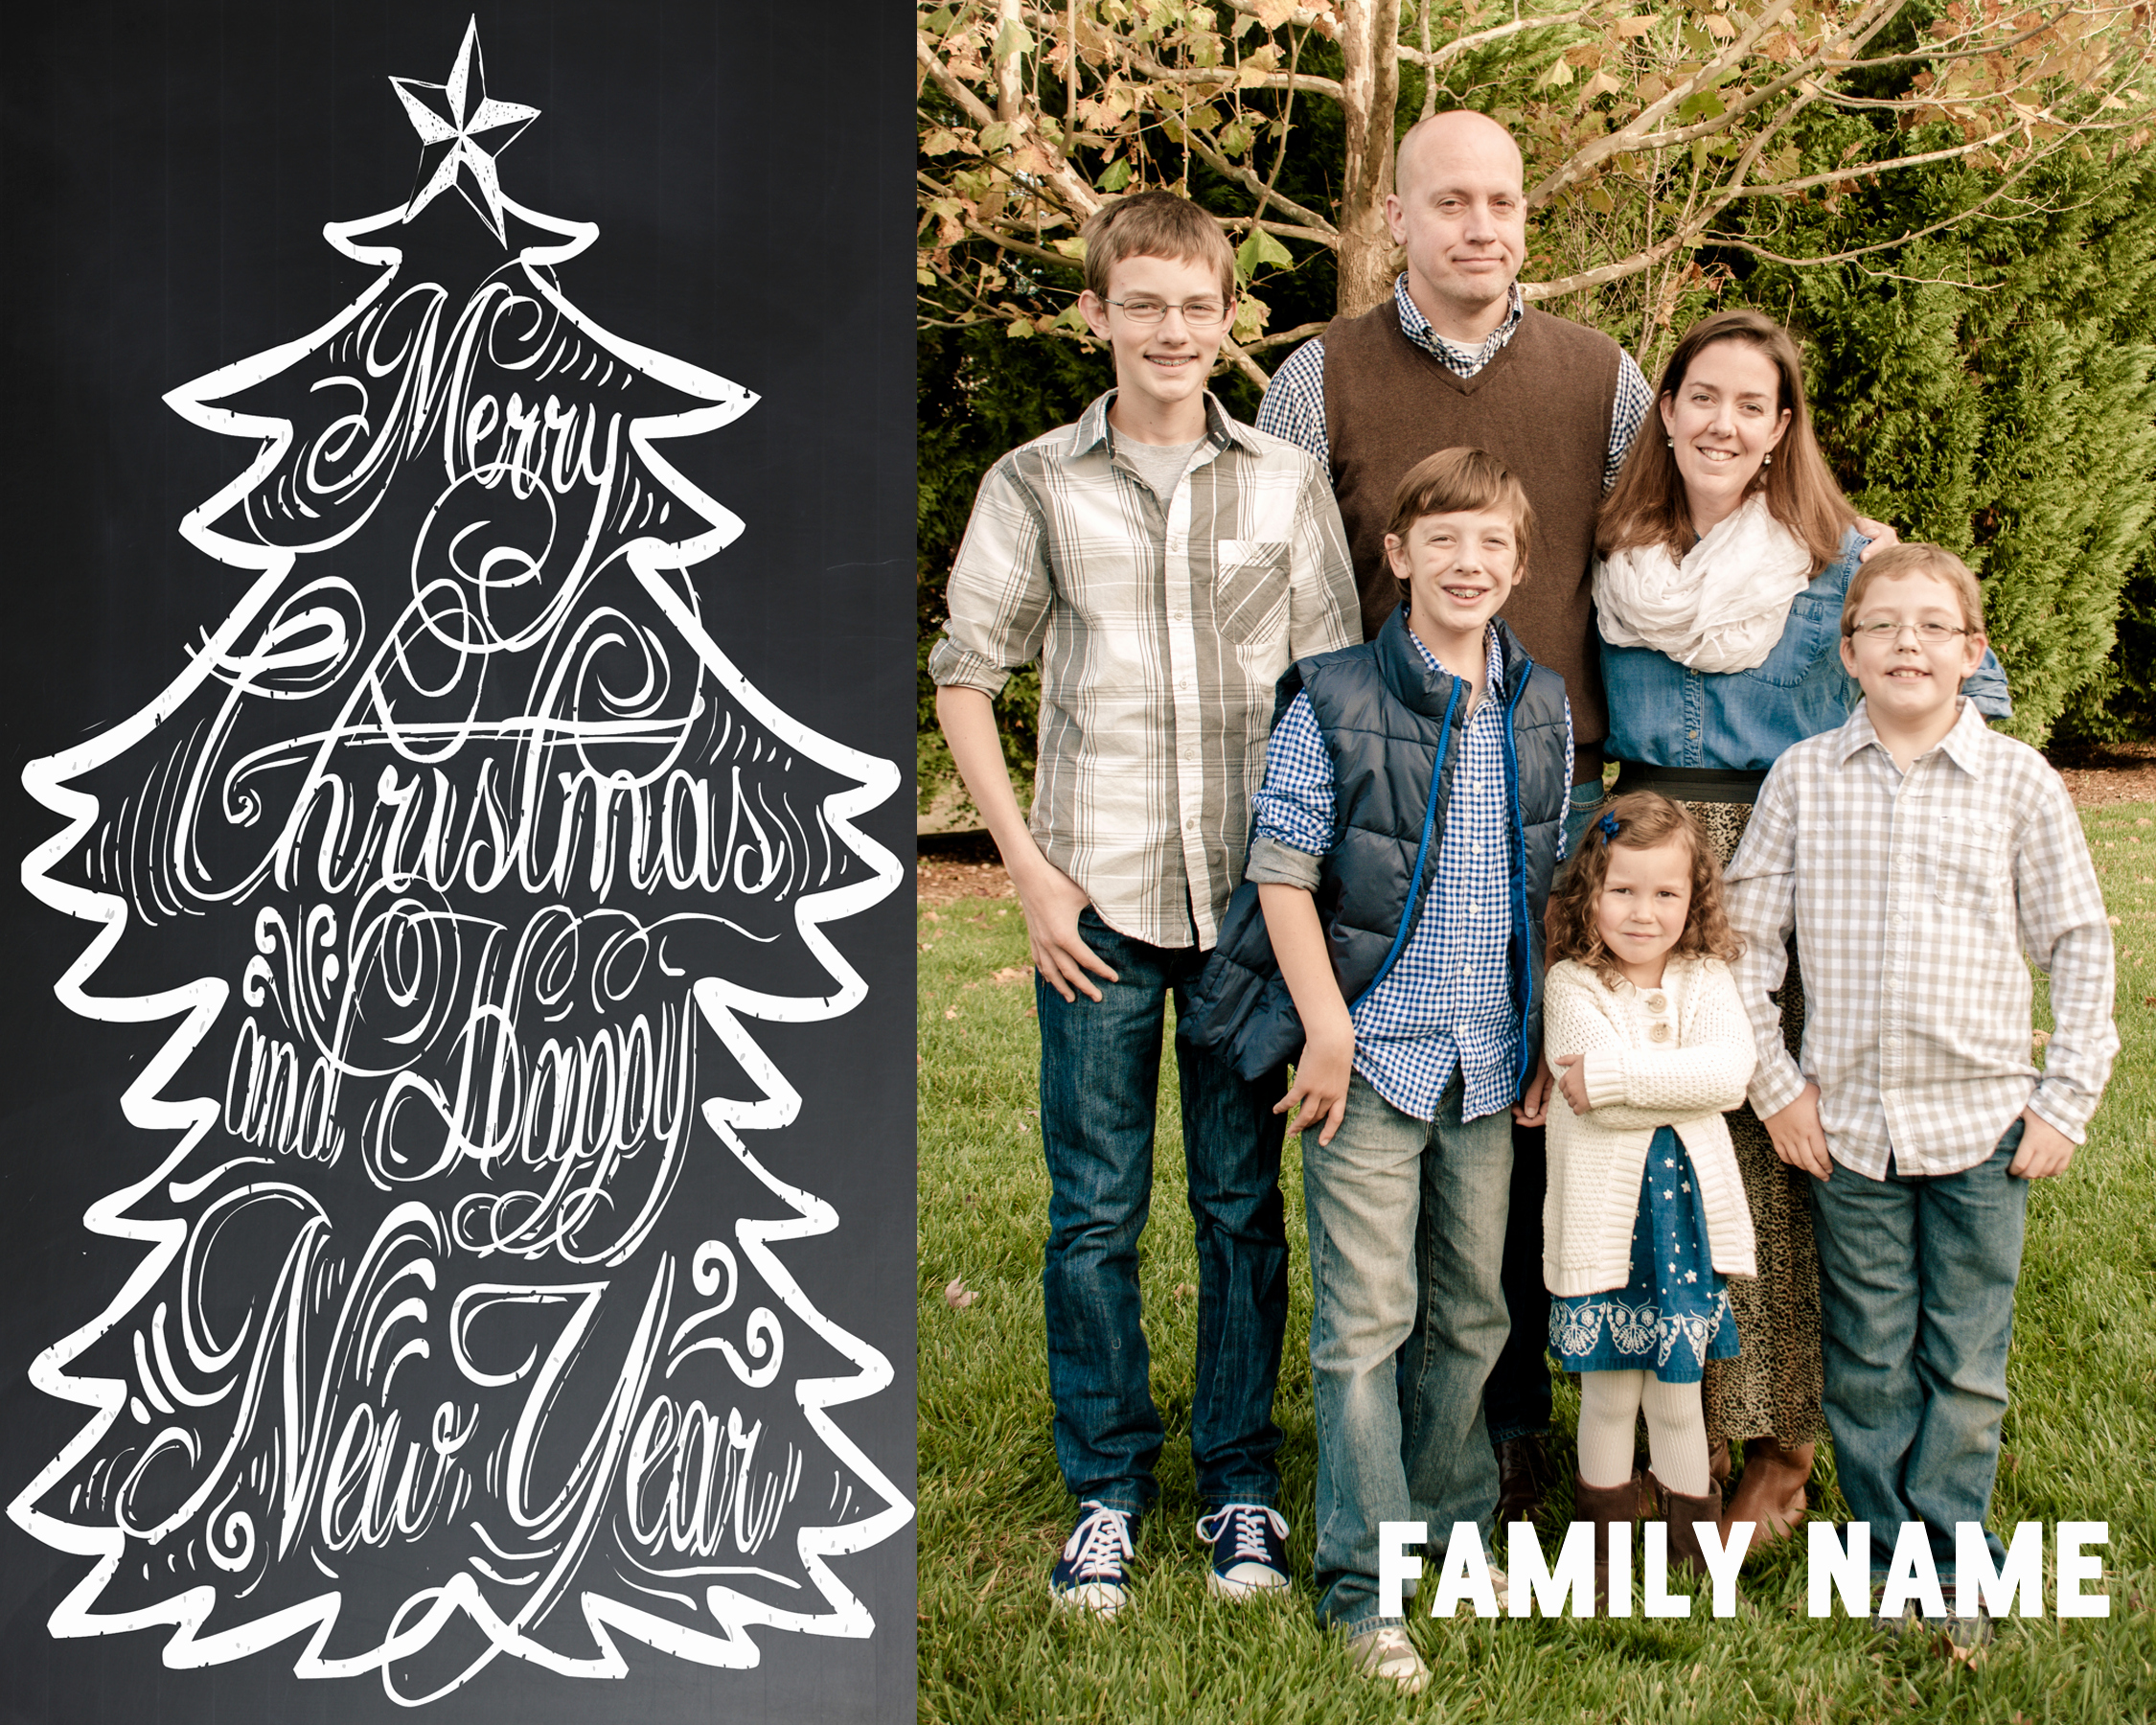 Free Photo Christmas Card Templates Fresh Free Chalkboard Christmas Card Download Ideas Goodncrazy